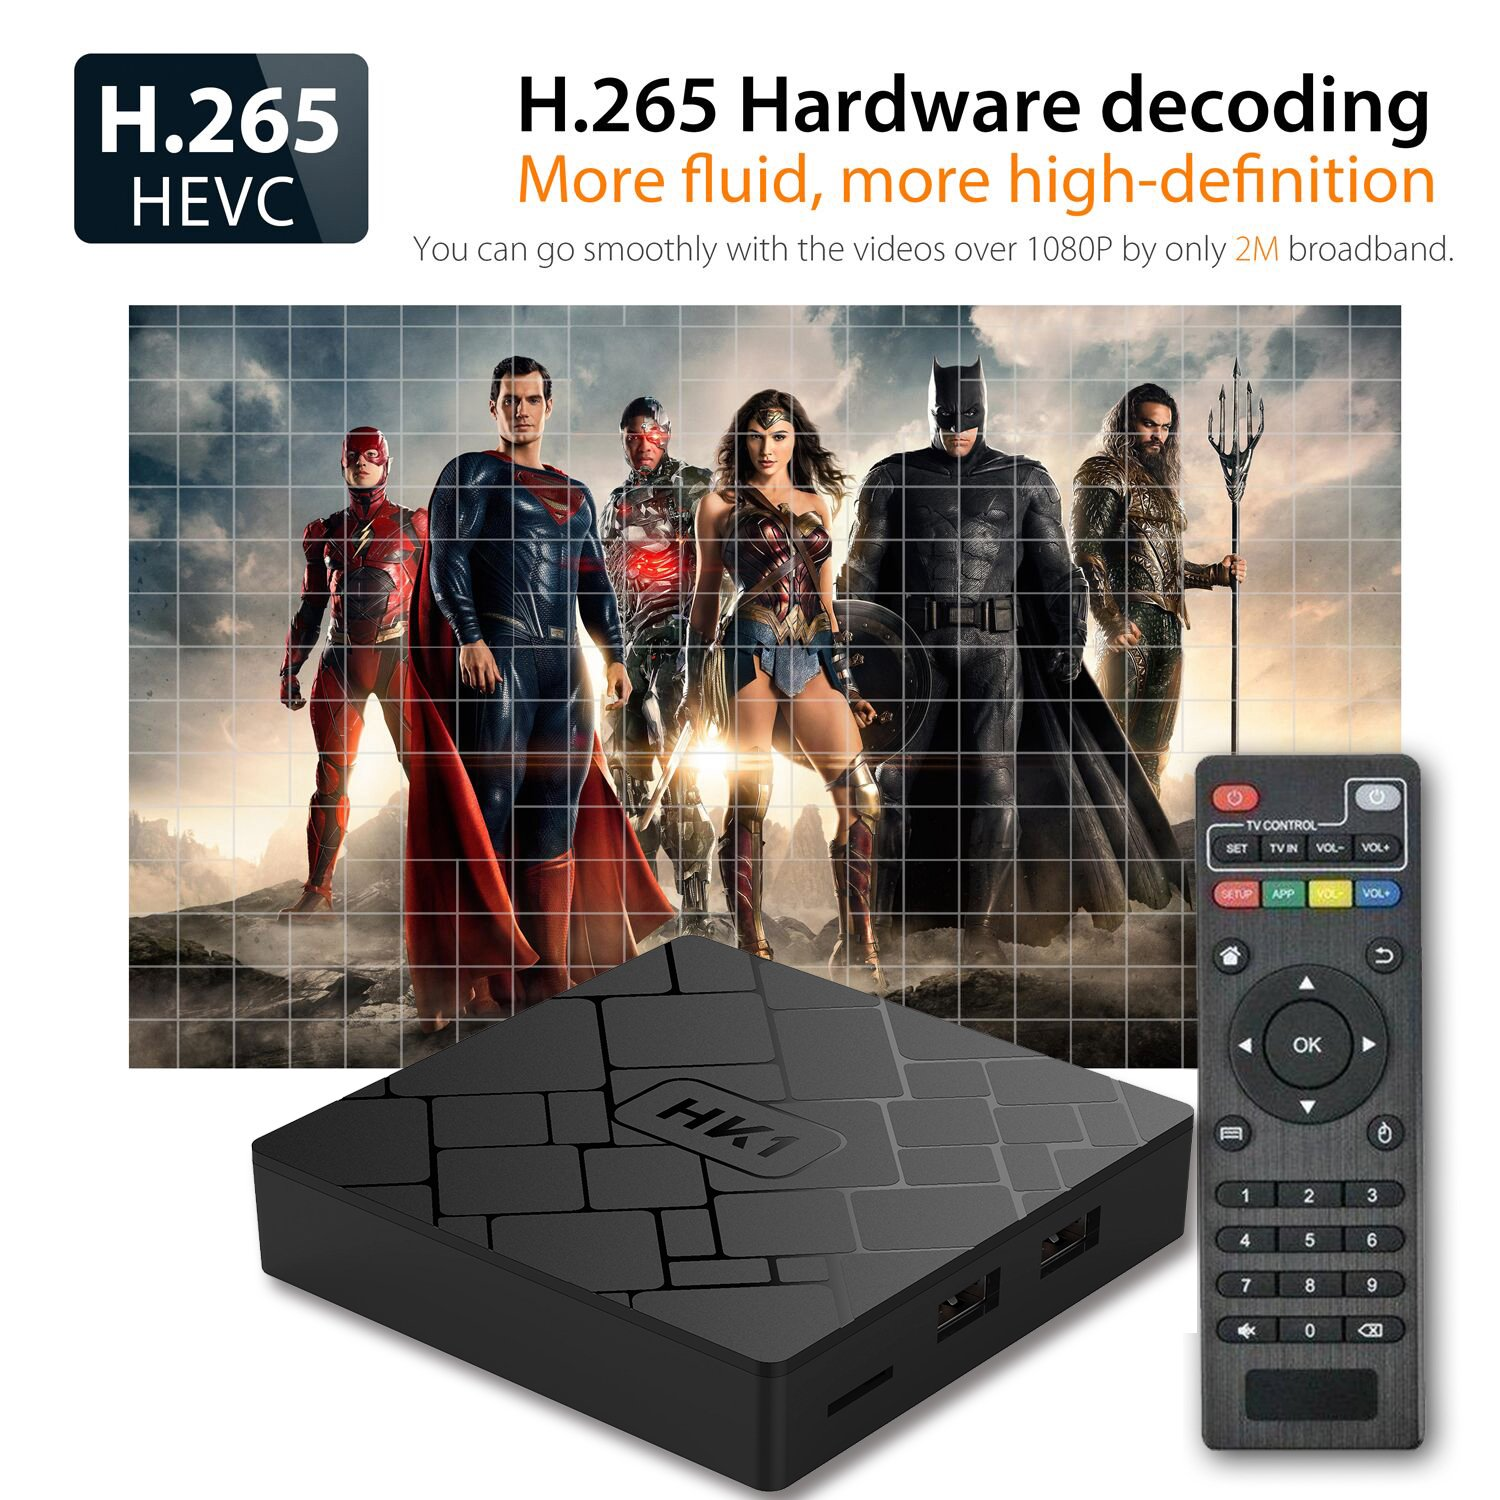 [Free Wireless Keyboard] 2018 J-Deal 4K 7 1 Android TV Box, 2GB RAM 16GB  ROM, Amlogic Quad Core A53 Processor 64 Bits, 2 4GHz WiFi Smart TV Box,  HDMI